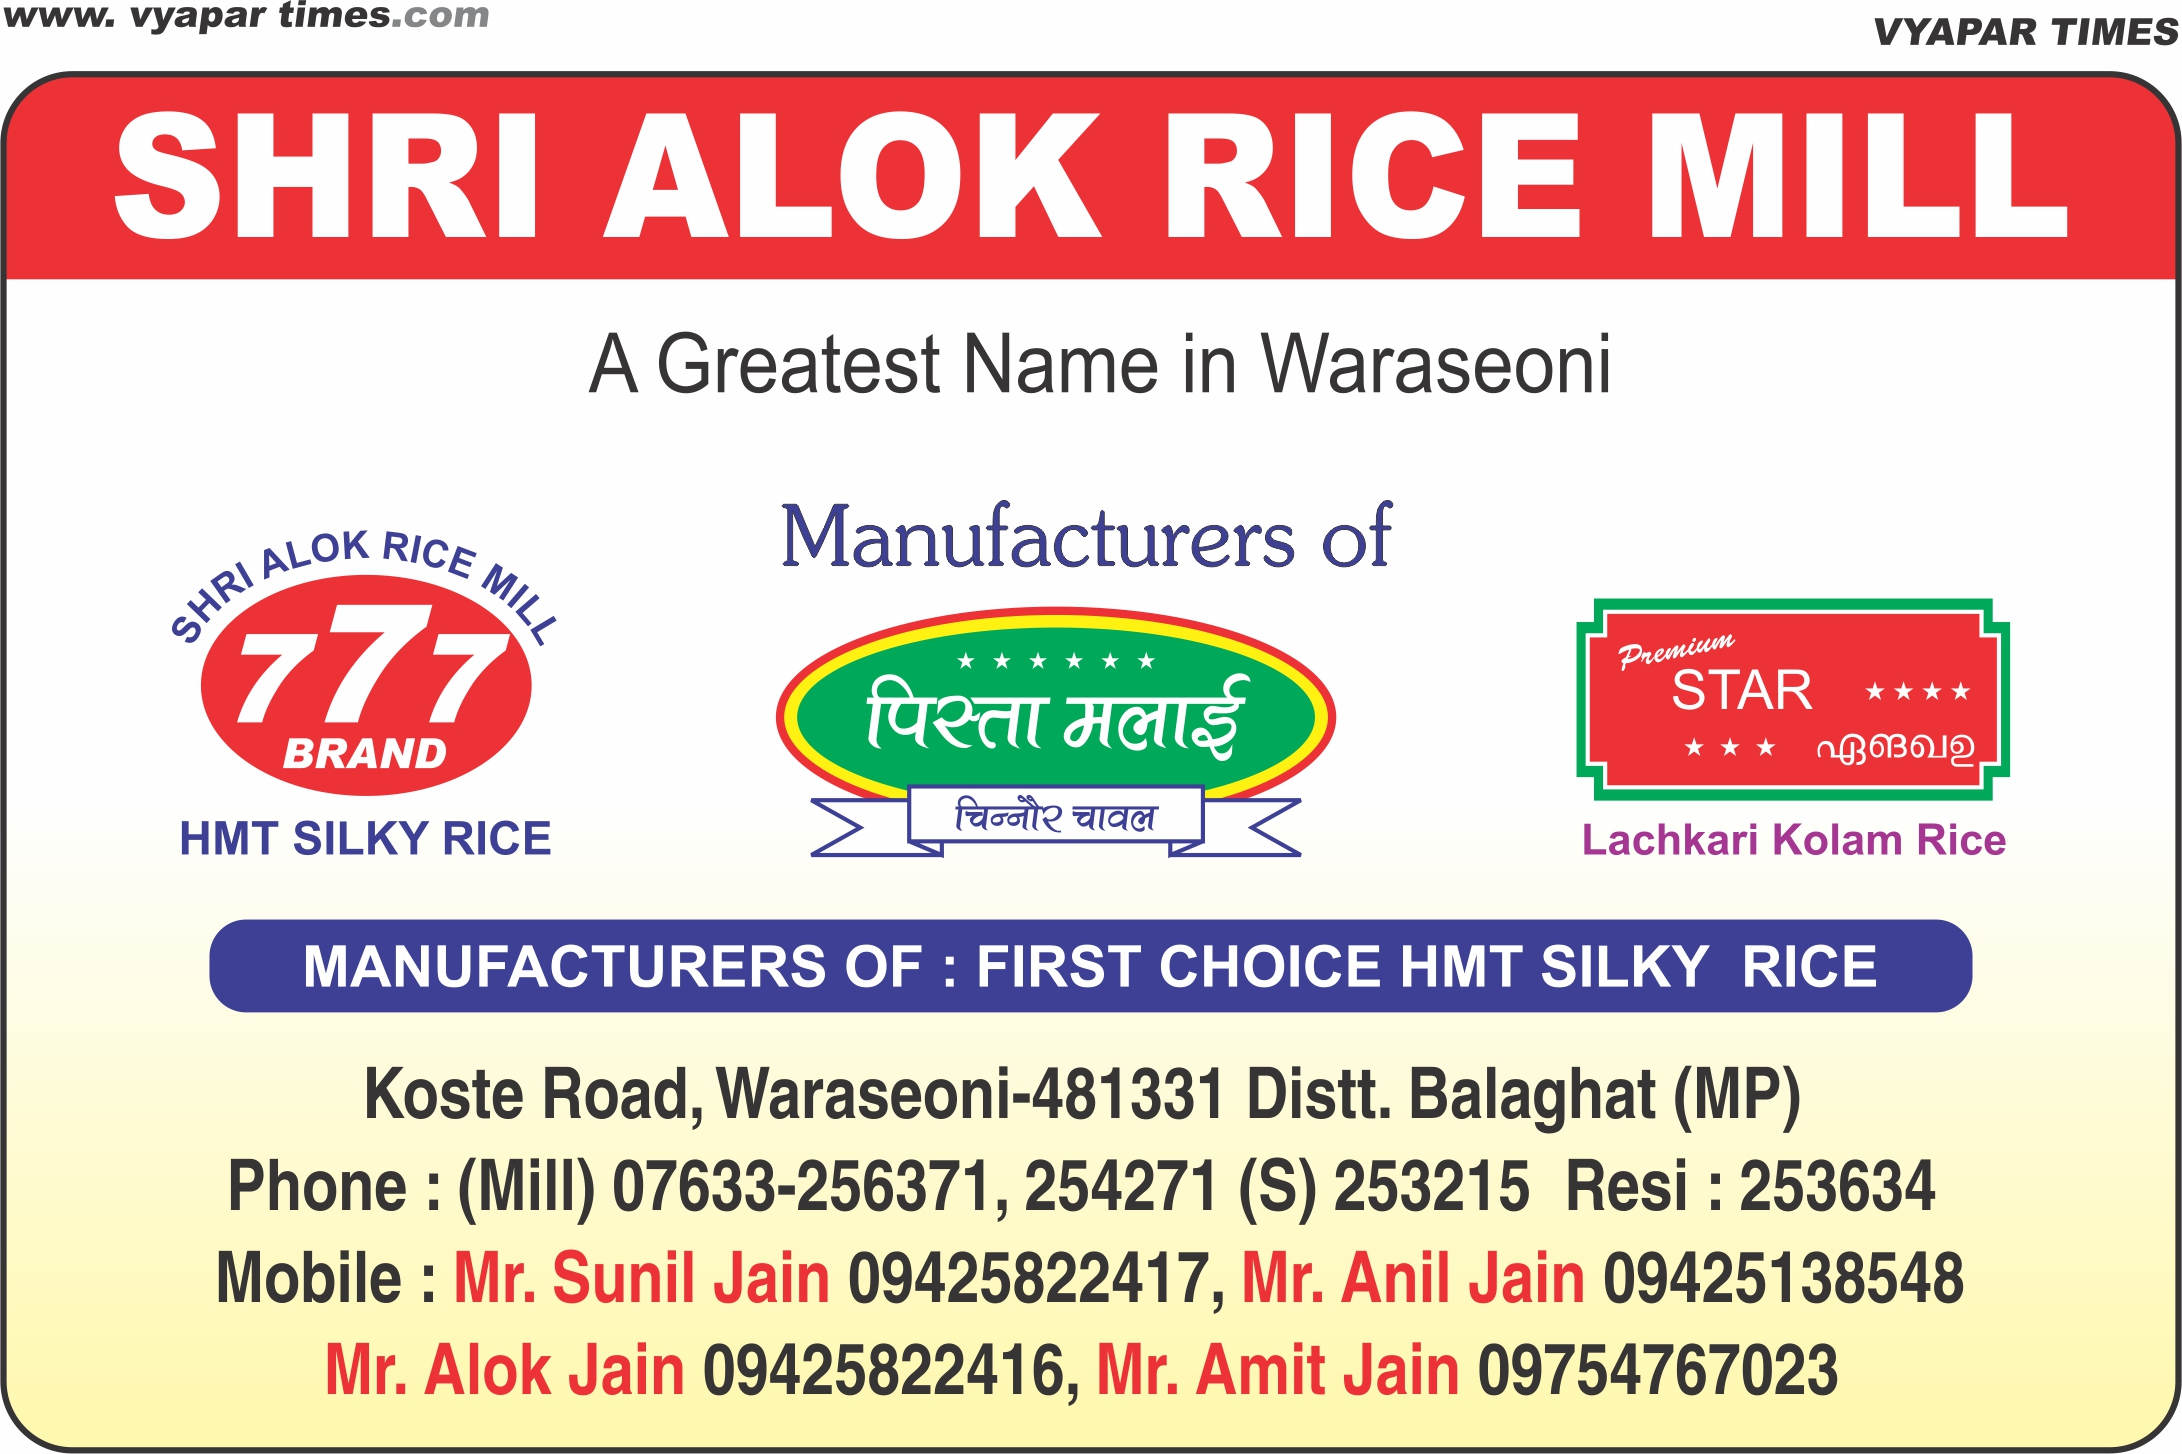 SHRI ALOK RICE MILL